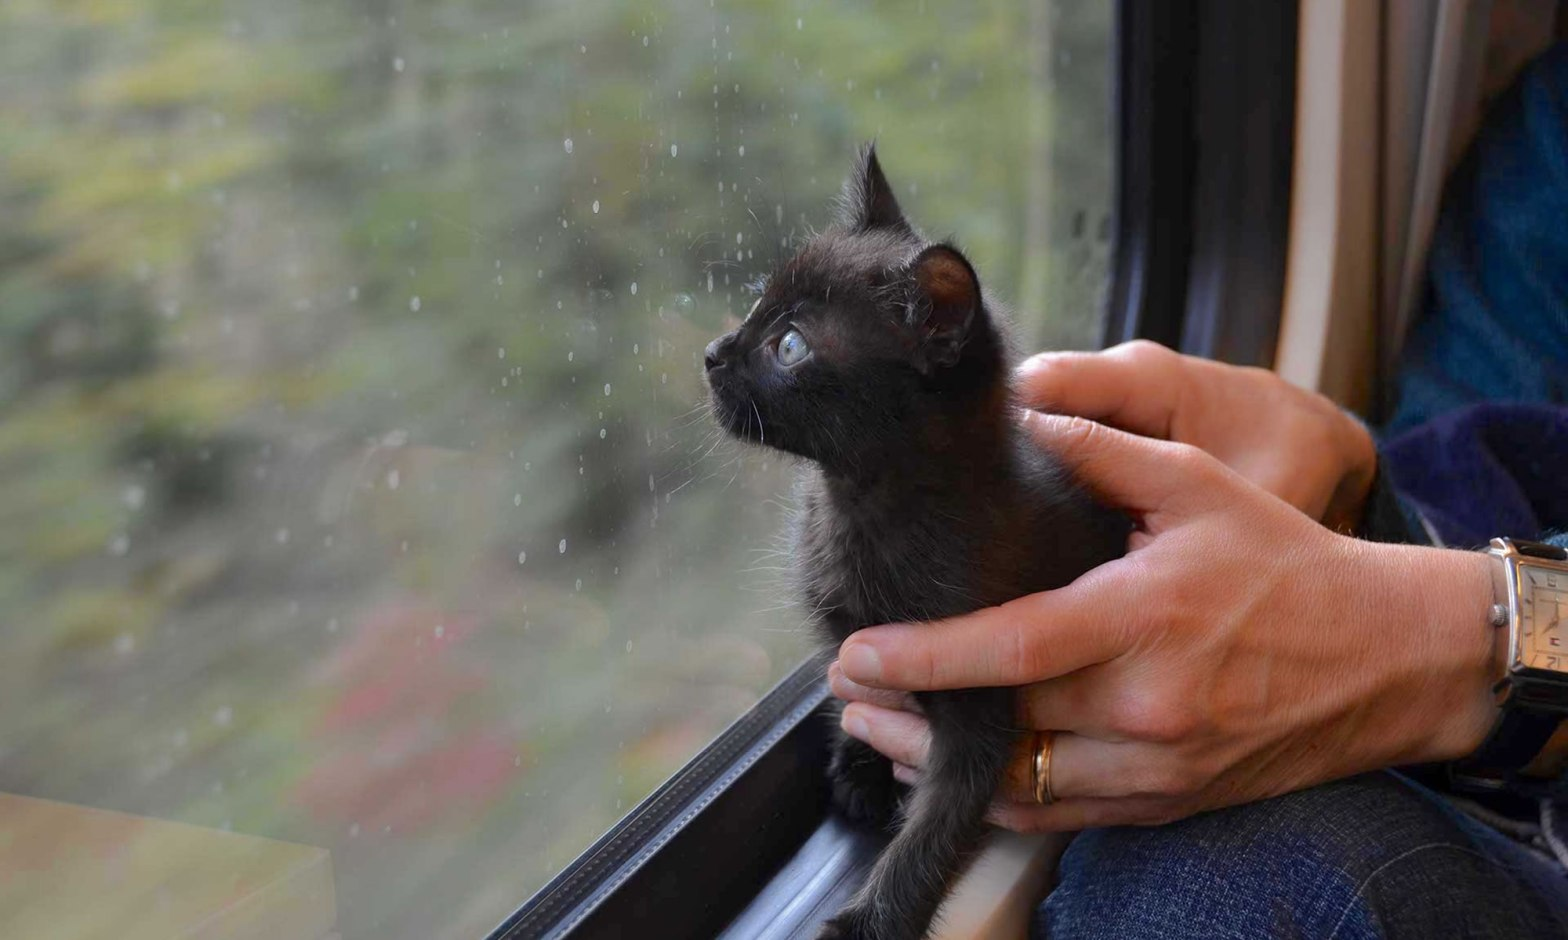 A pair of male hands hold a black kitten, as the animal looks outside through a train's window.